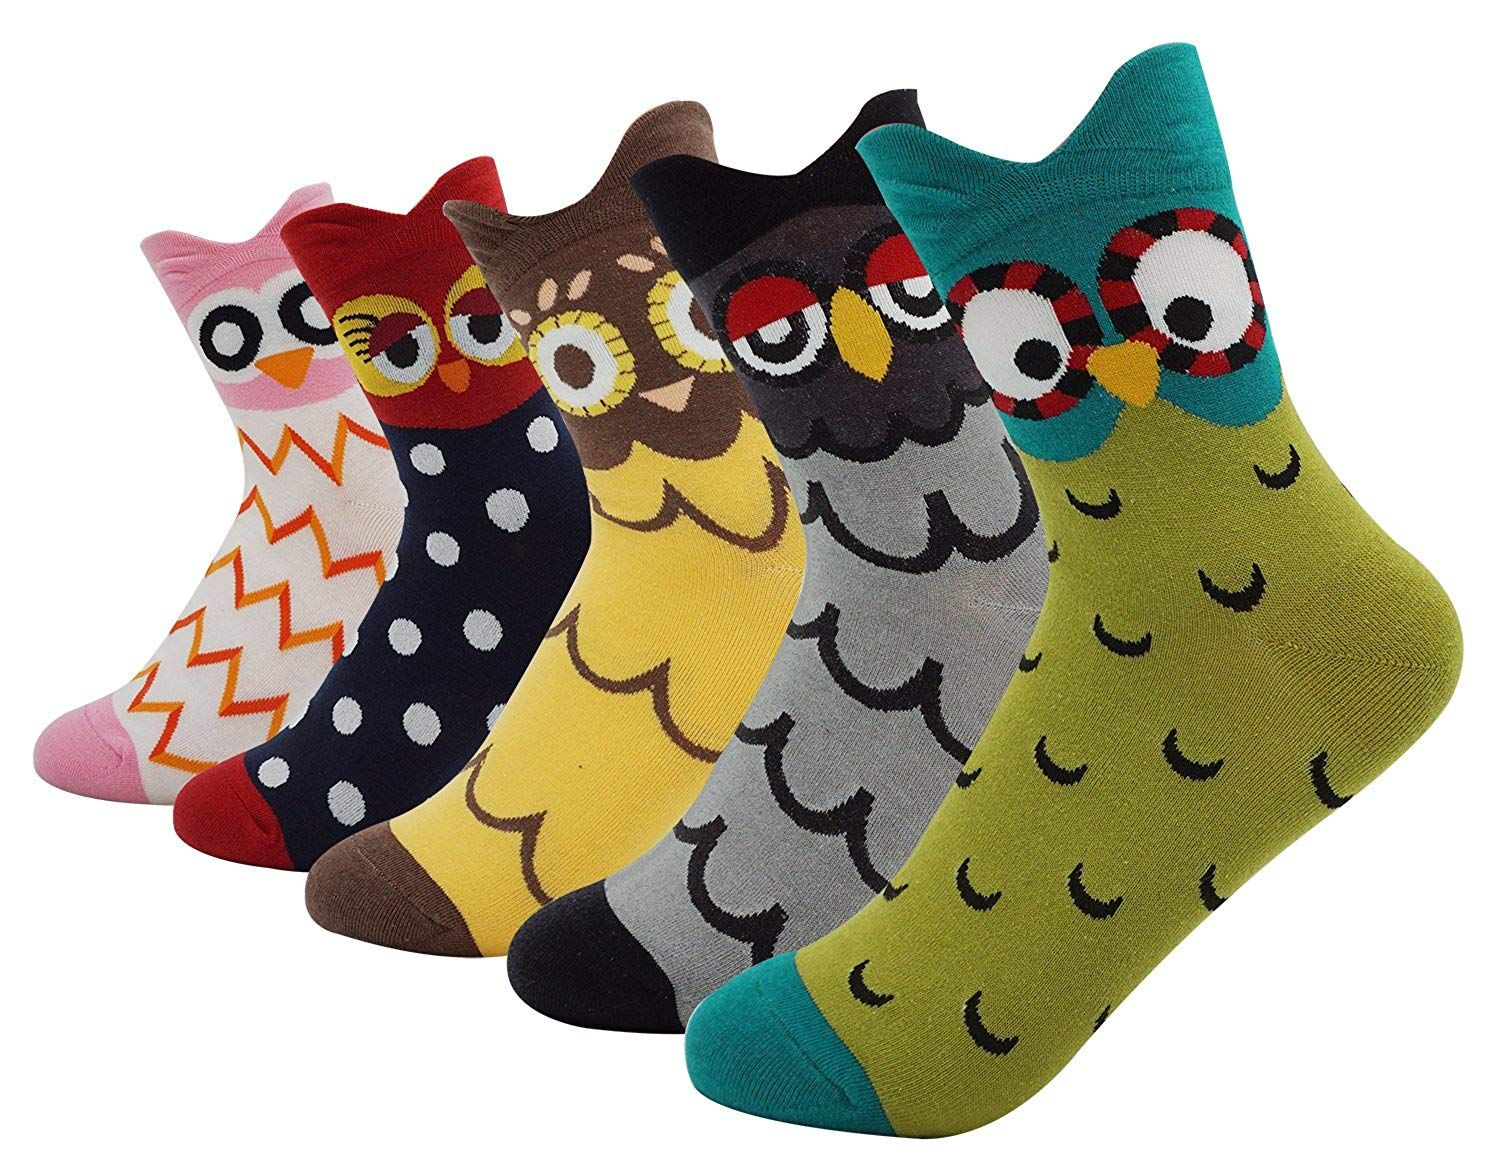 efddd158465af Women's Lady's Cute Owl Design Cotton Socks, 5 Pairs Multi Color One ...